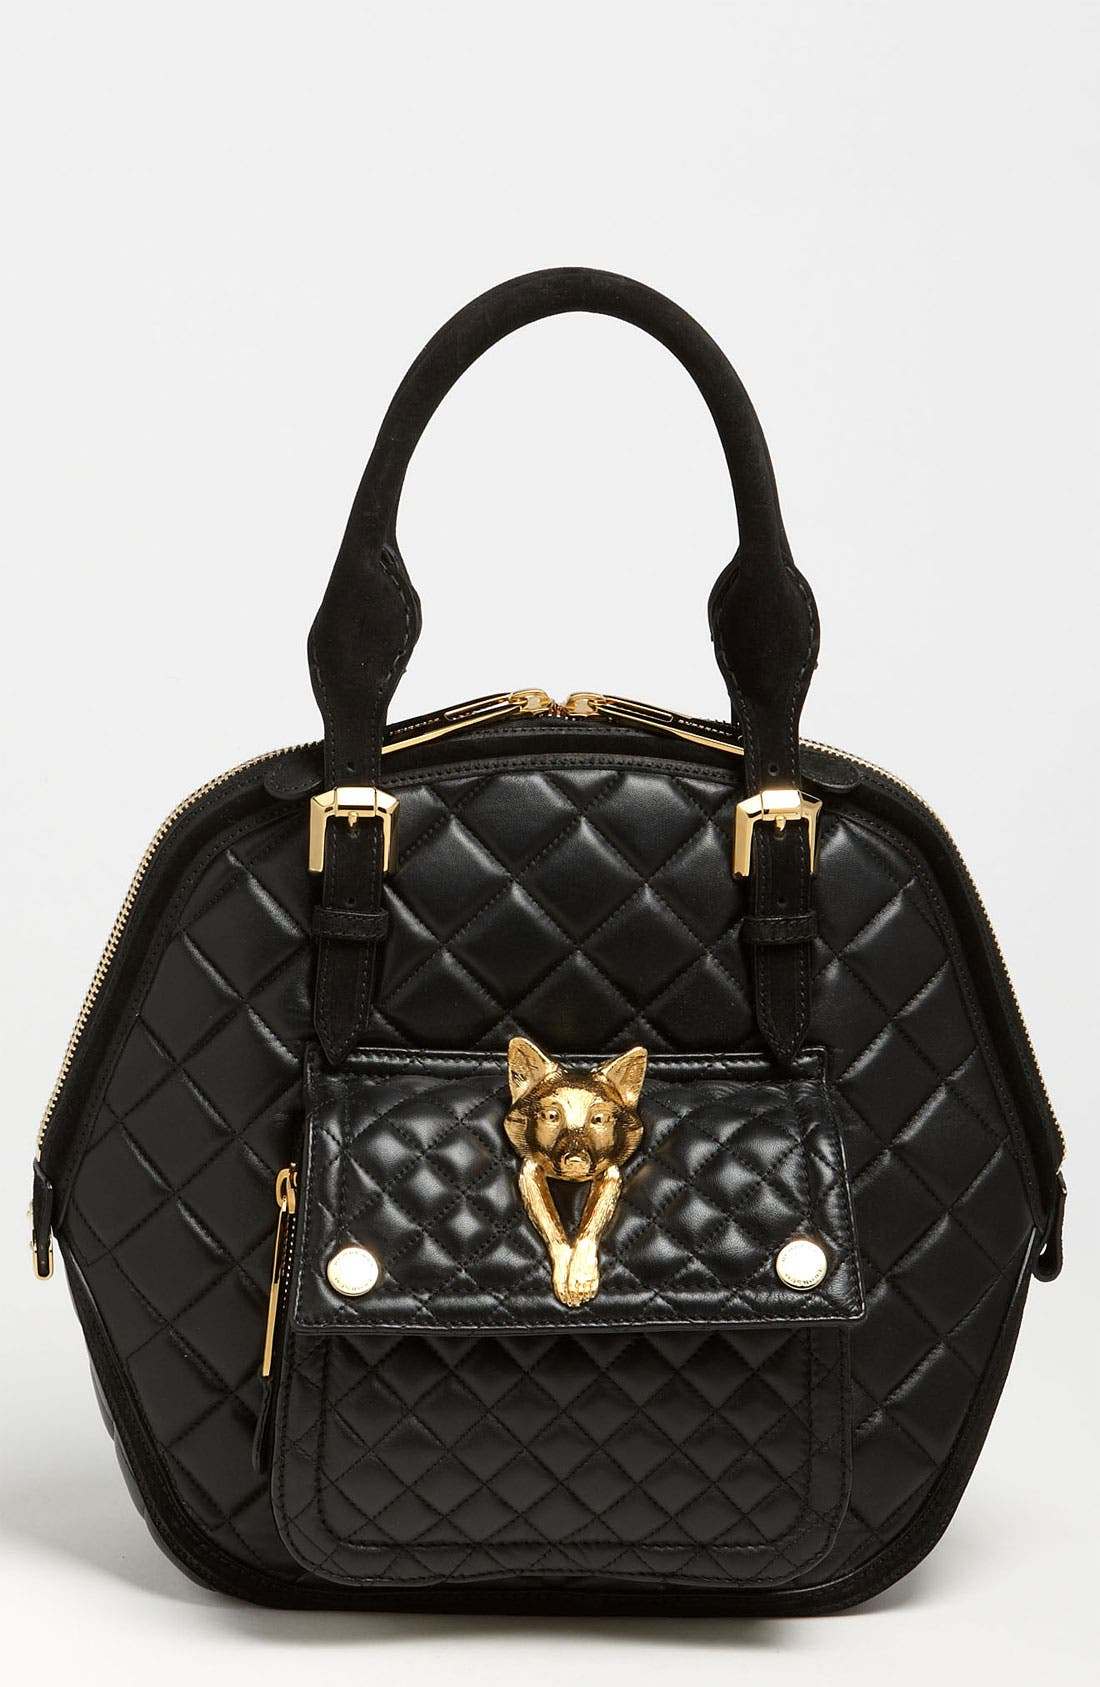 Alternate Image 1 Selected - Burberry Prorsum Quilted Leather Satchel